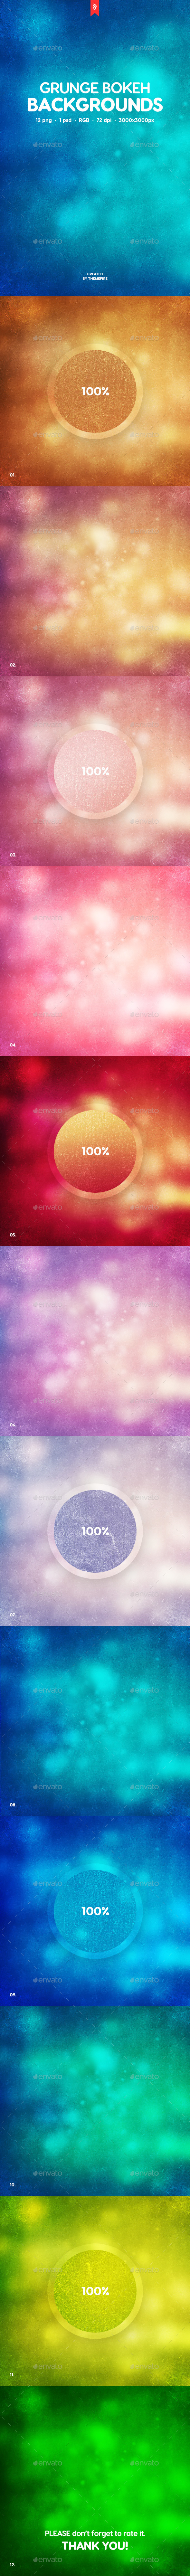 Grunge Blurred Bokeh Backgrounds - Abstract Backgrounds